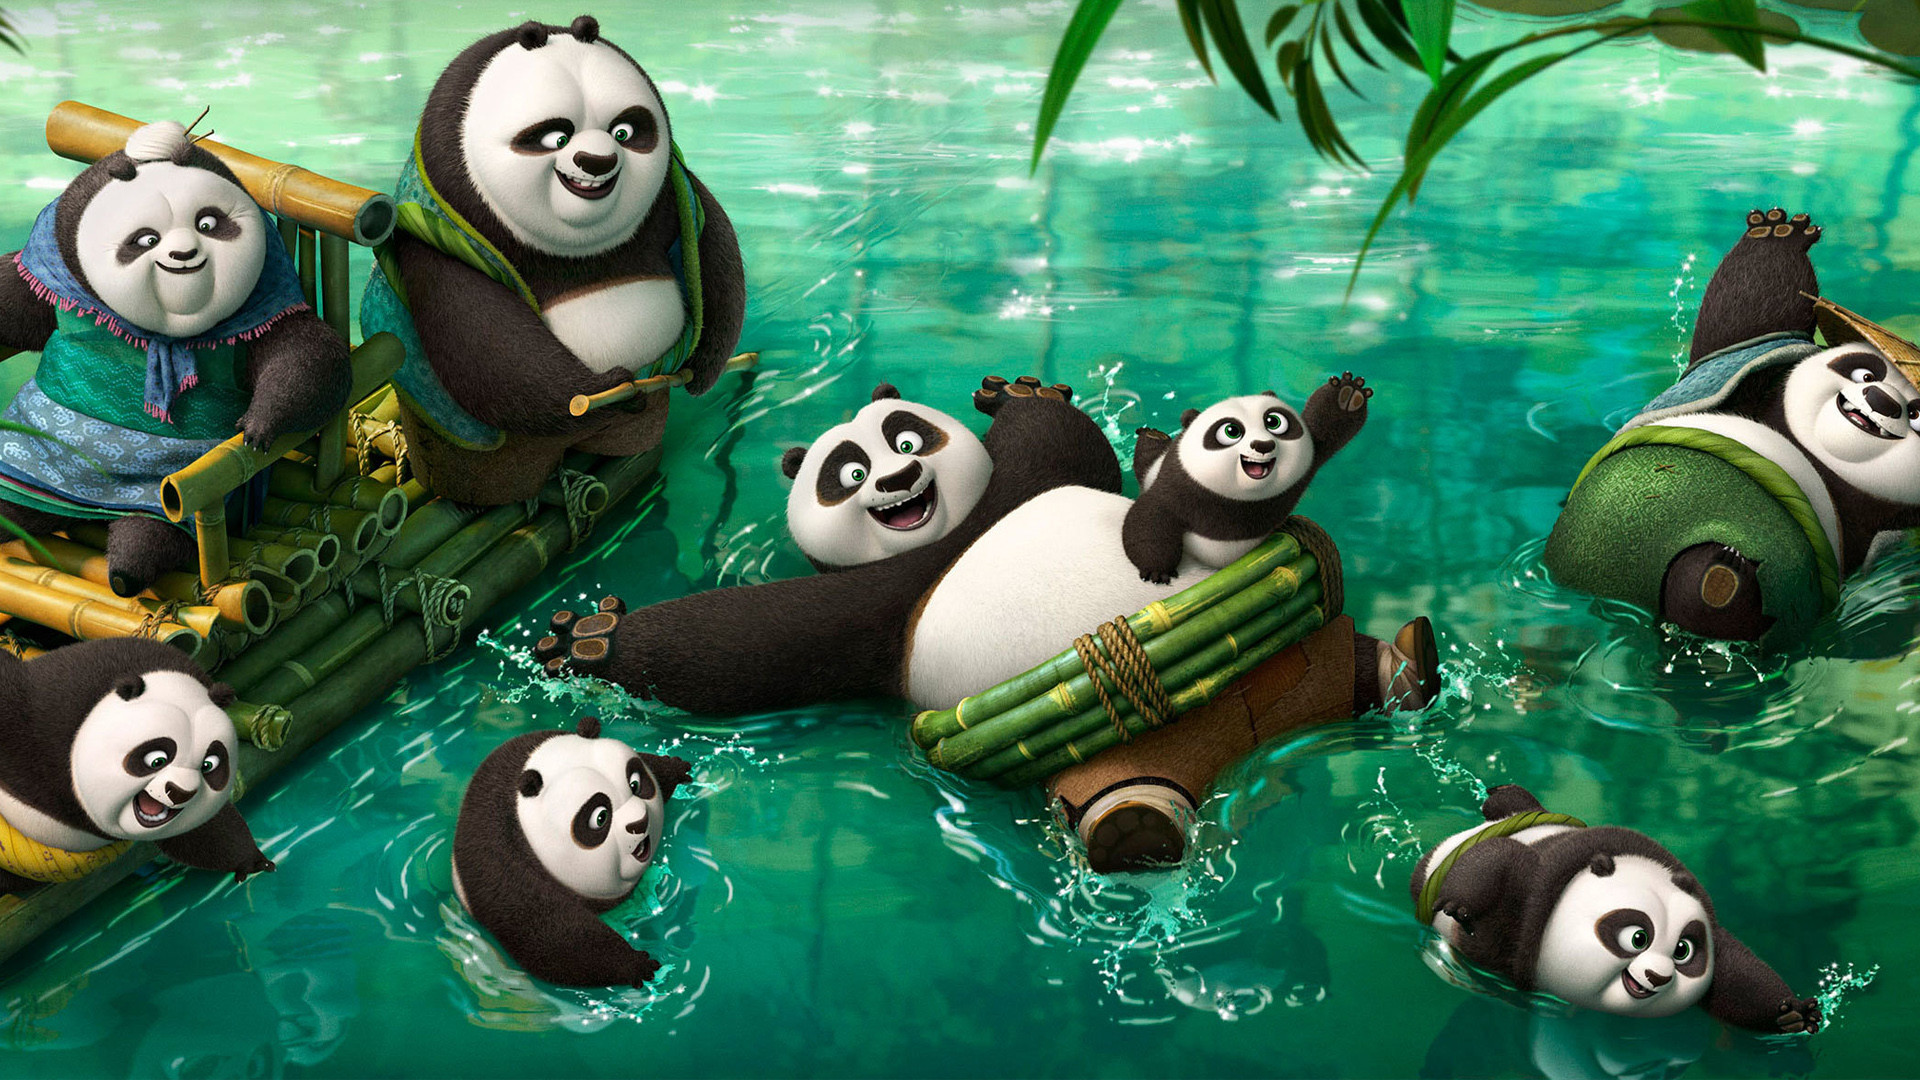 1920x1080 Kung fu Panda 3 New Pandas Wallpapers | HD Wallpapers